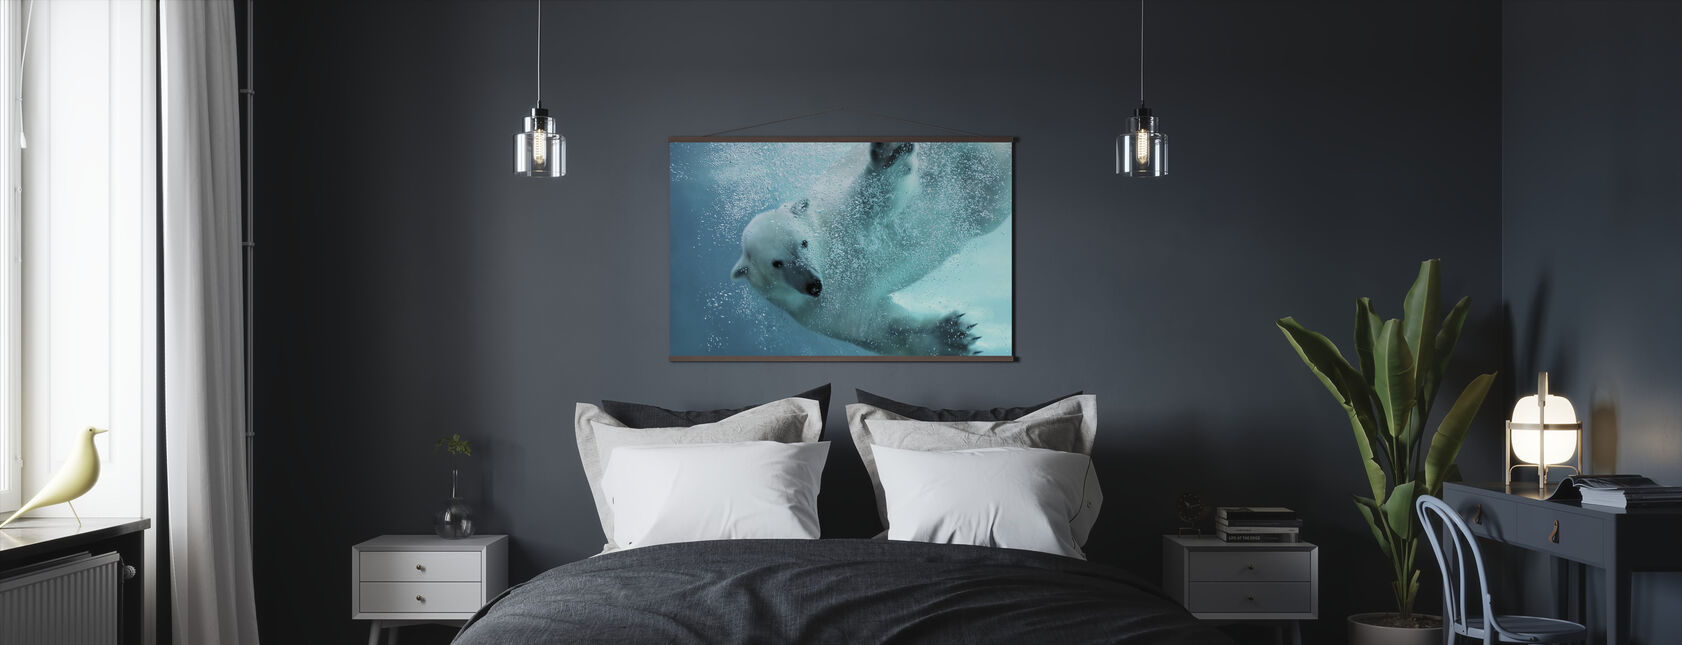 Underwater Polar Bear - Poster - Bedroom